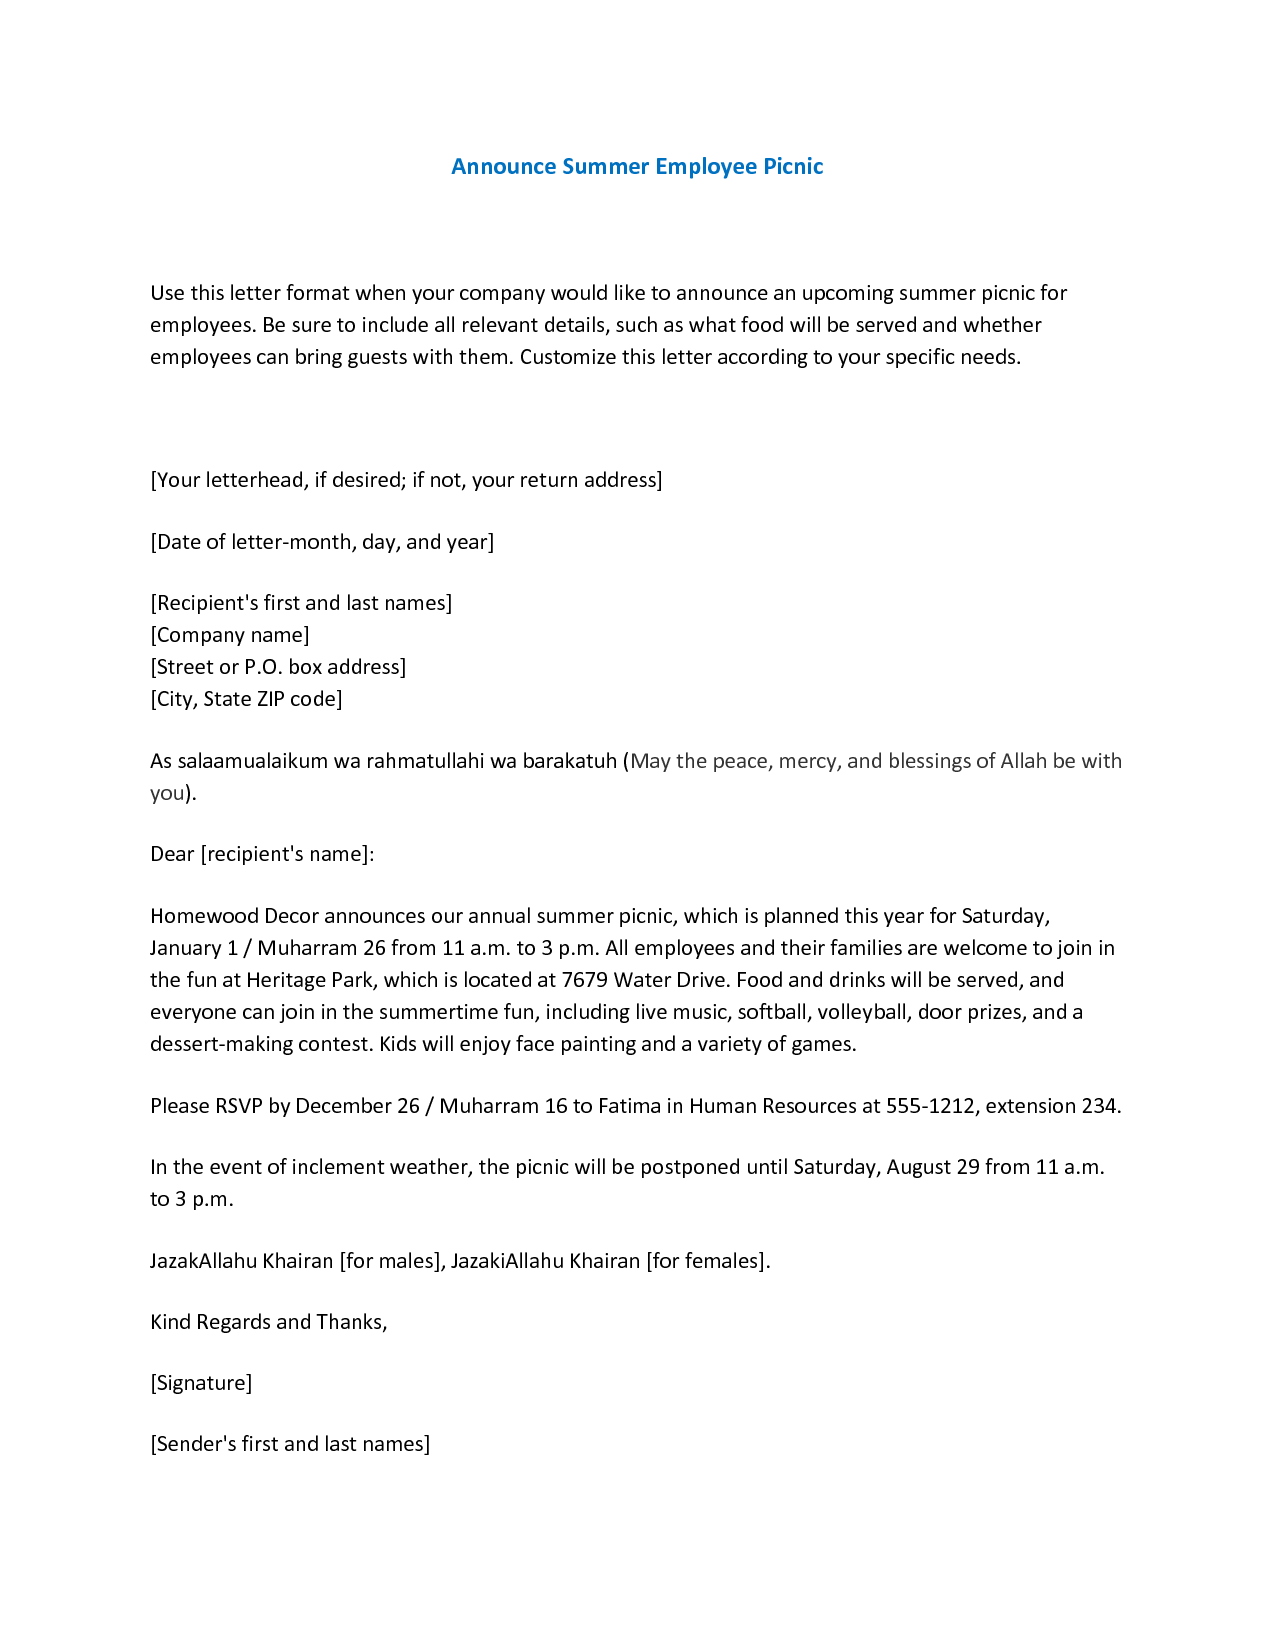 Announce Summer Employee Picnic Use this letter format when your – Resignation Announcement Template